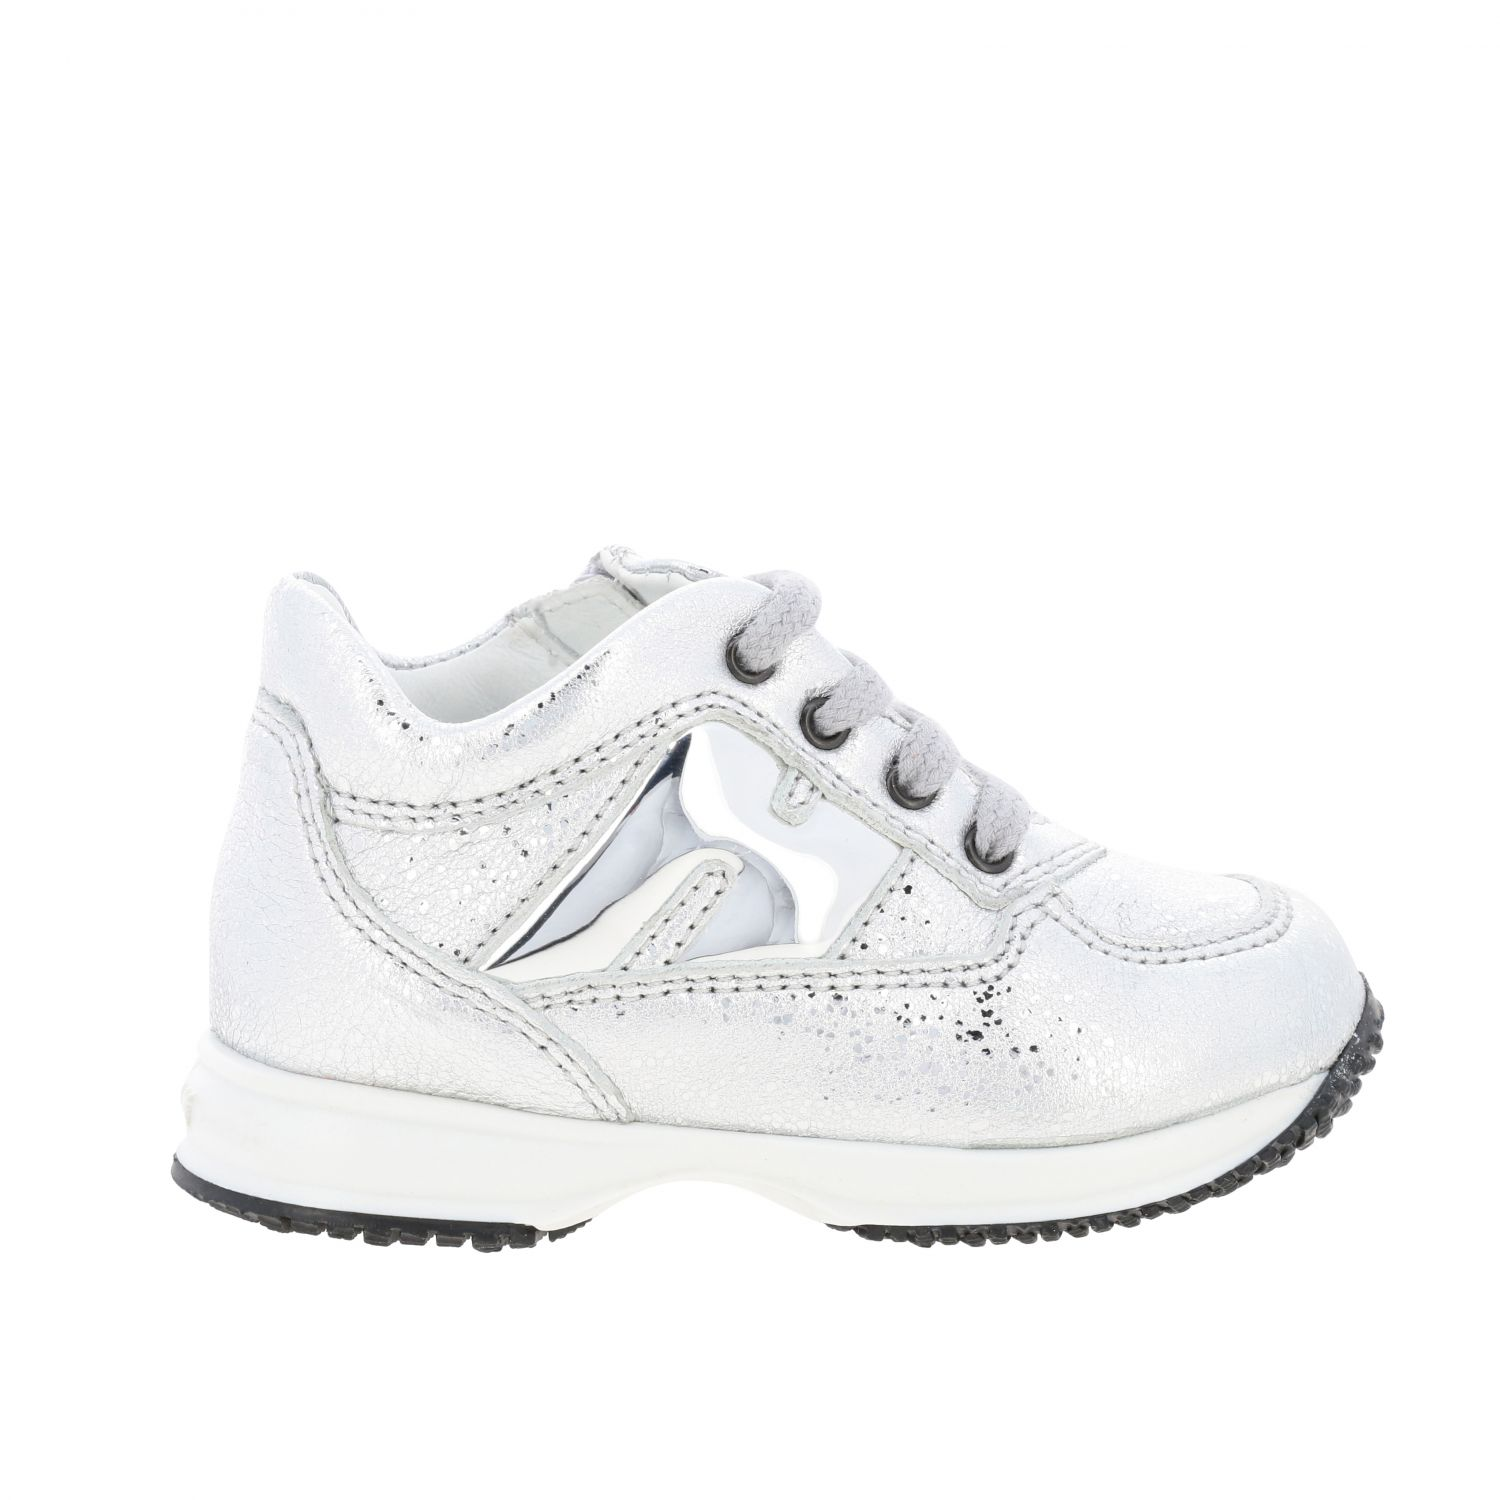 Shoes Hogan Baby: Shoes kids Hogan Baby silver 1